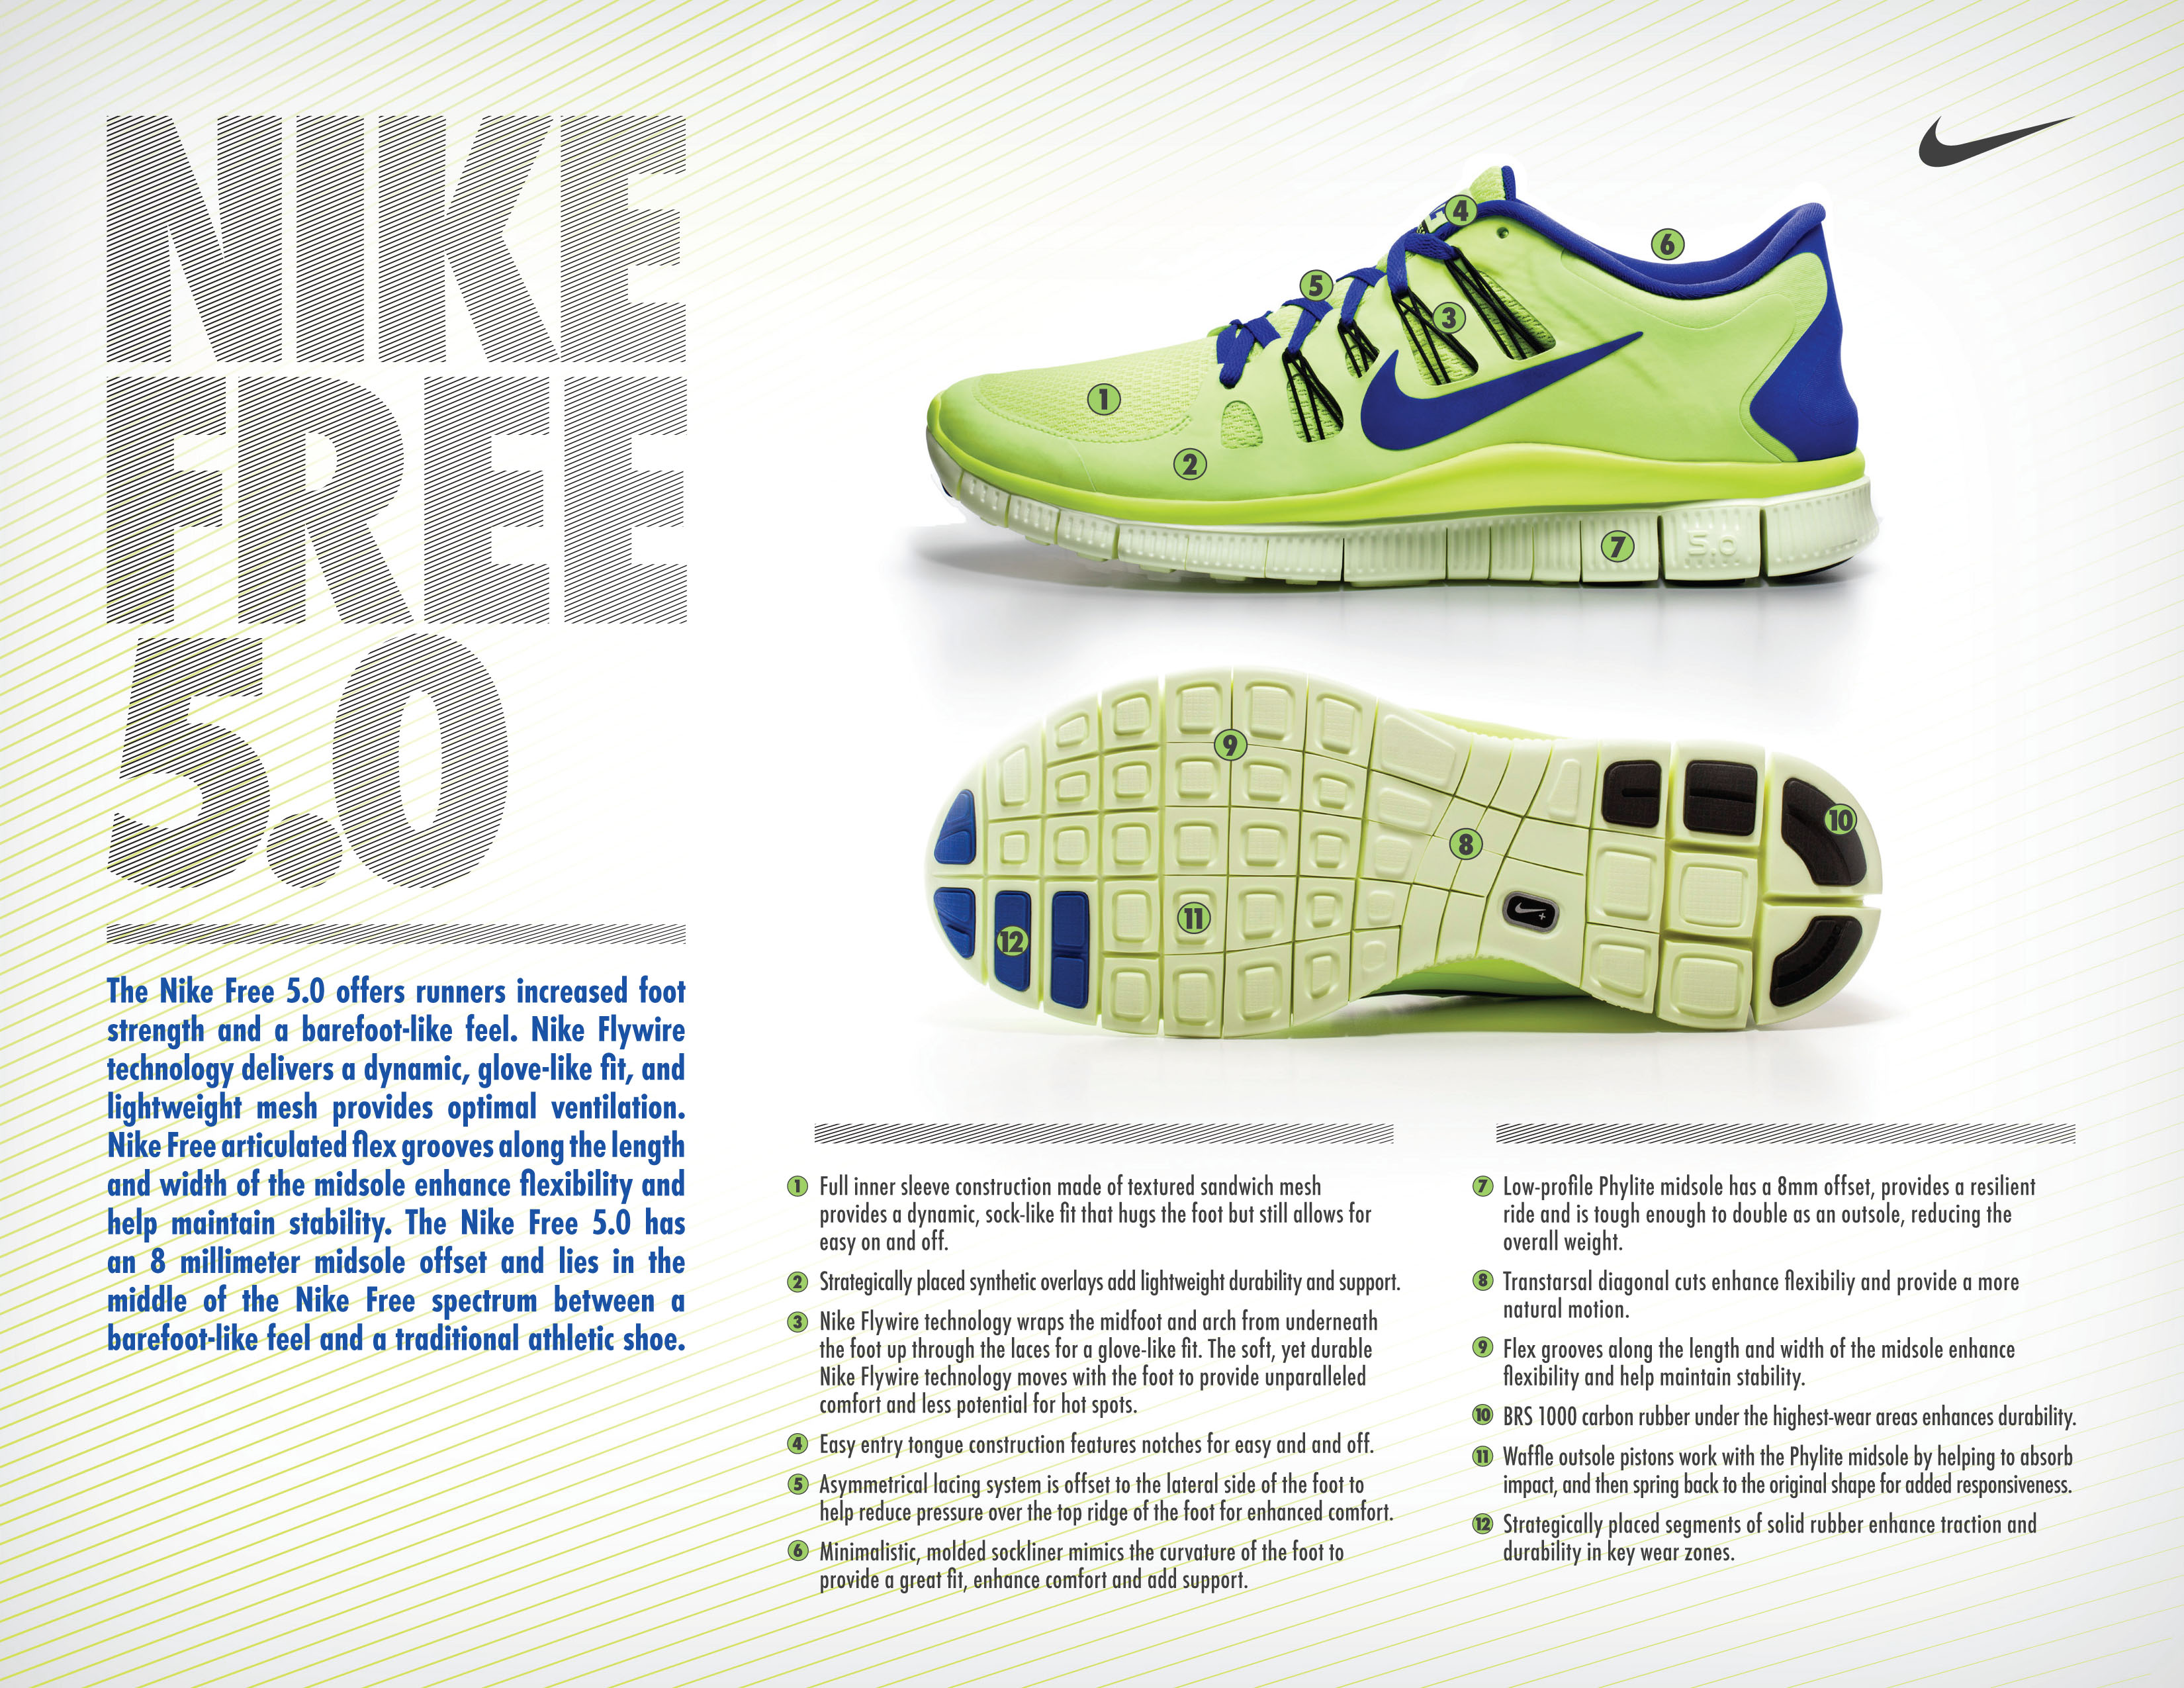 lowest price 4c0e8 72cb7 Nike Free 5.0 Verses Adidas Energy Boost  Tested on the road and in ...